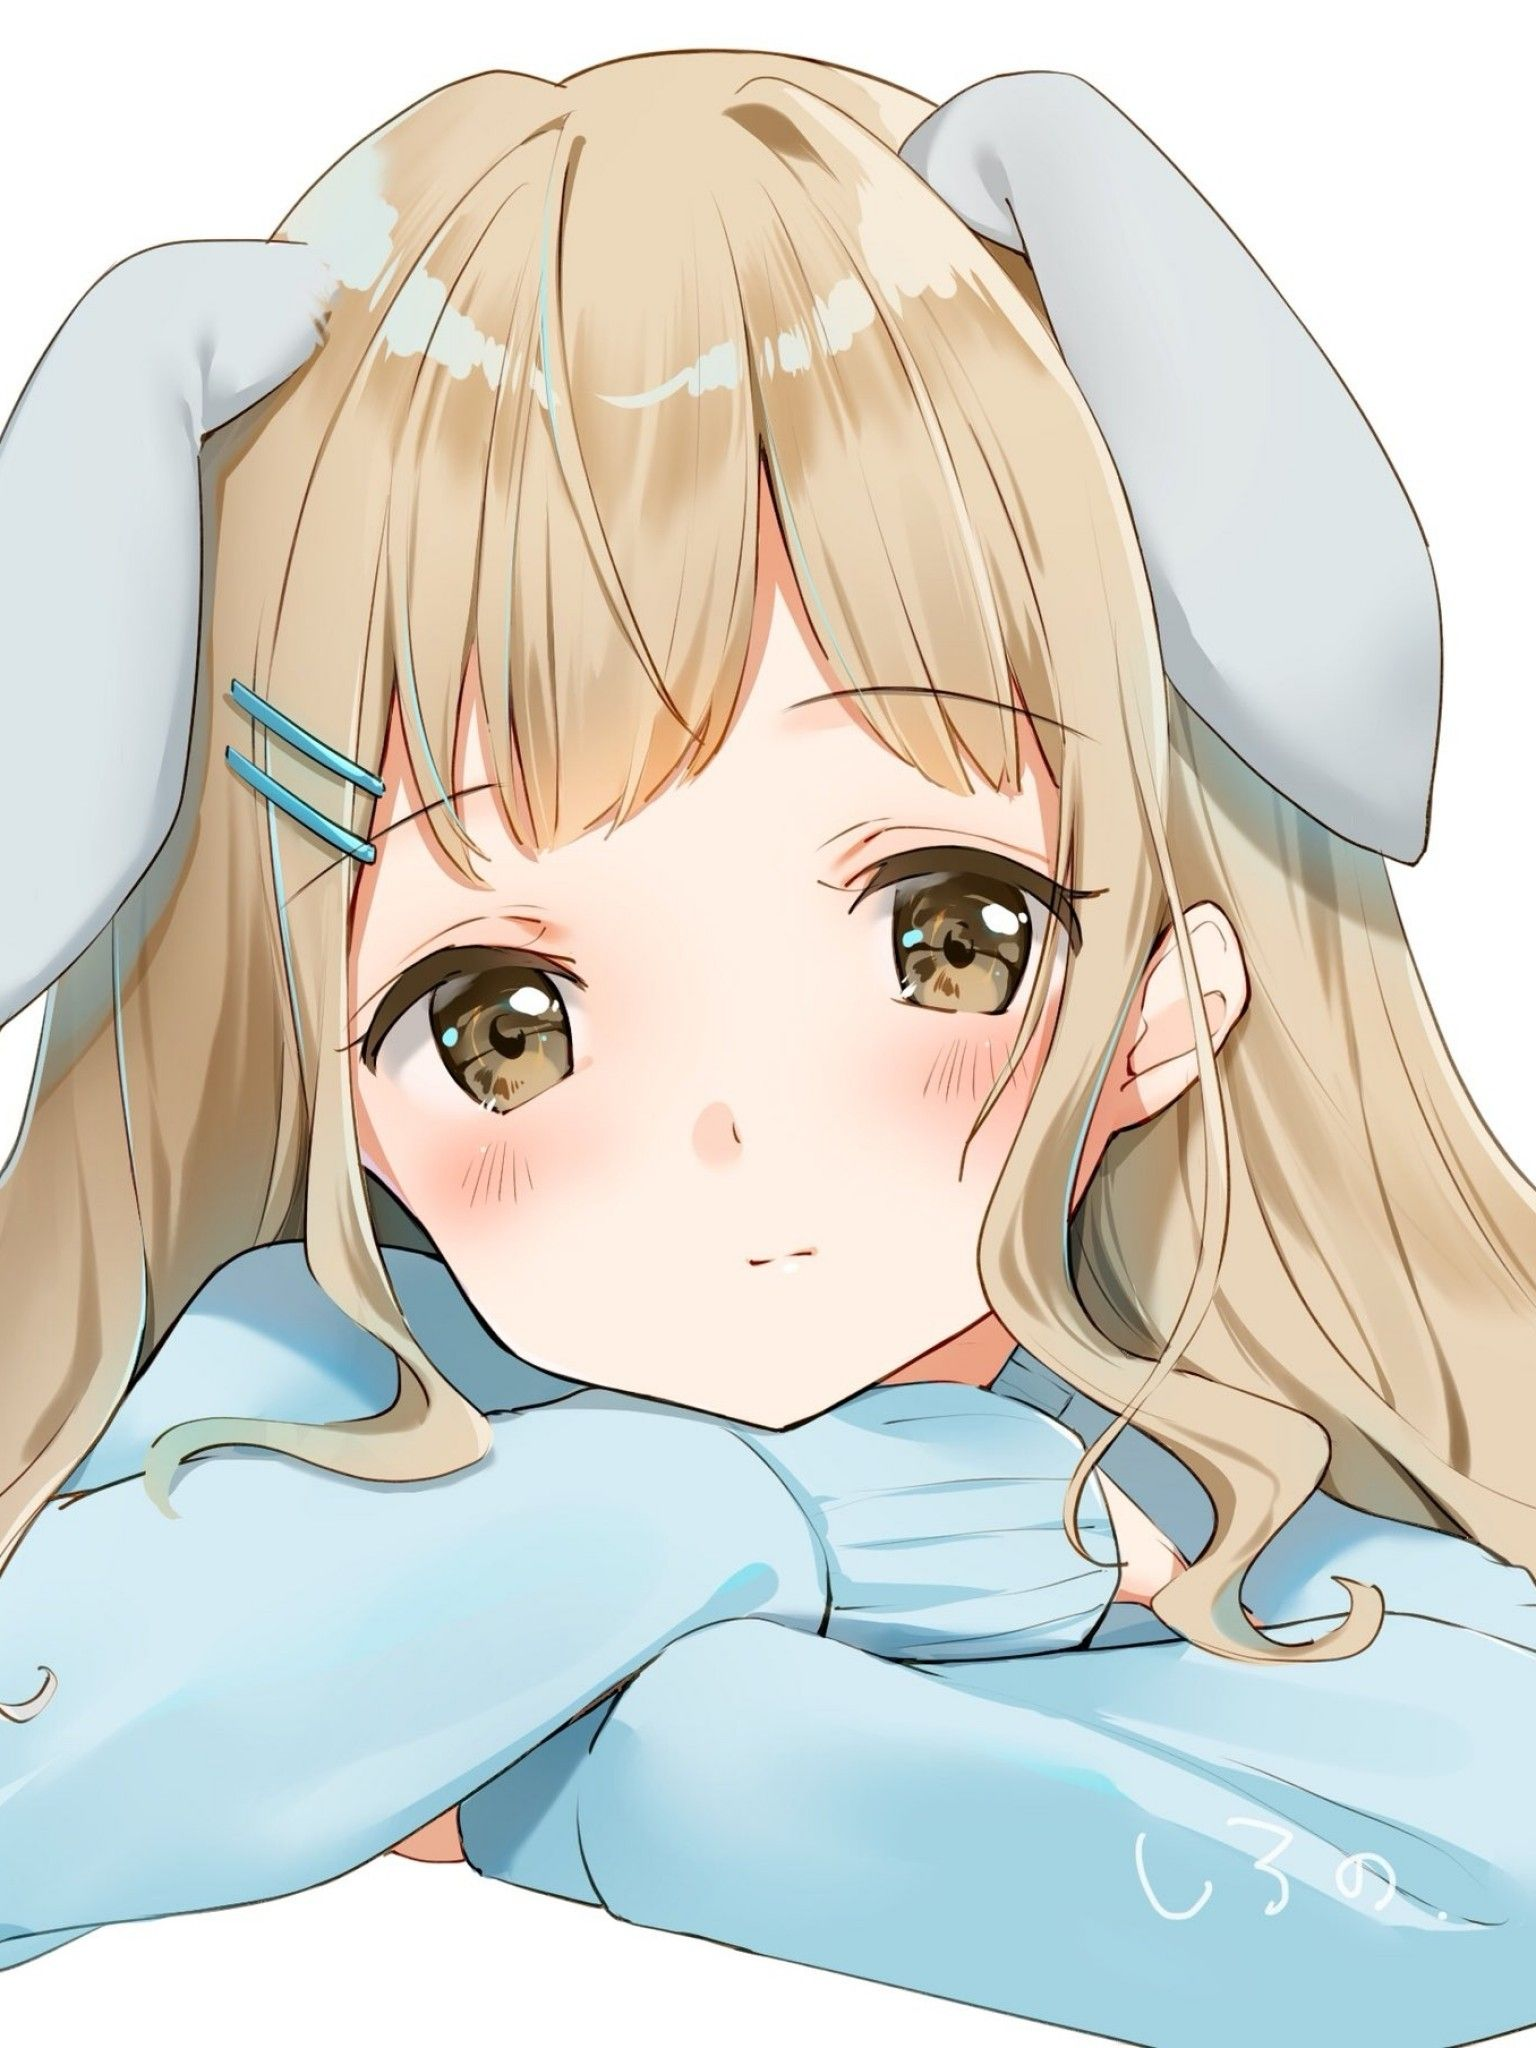 Cute Anime Girl Bunny Wallpapers - Wallpaper Cave